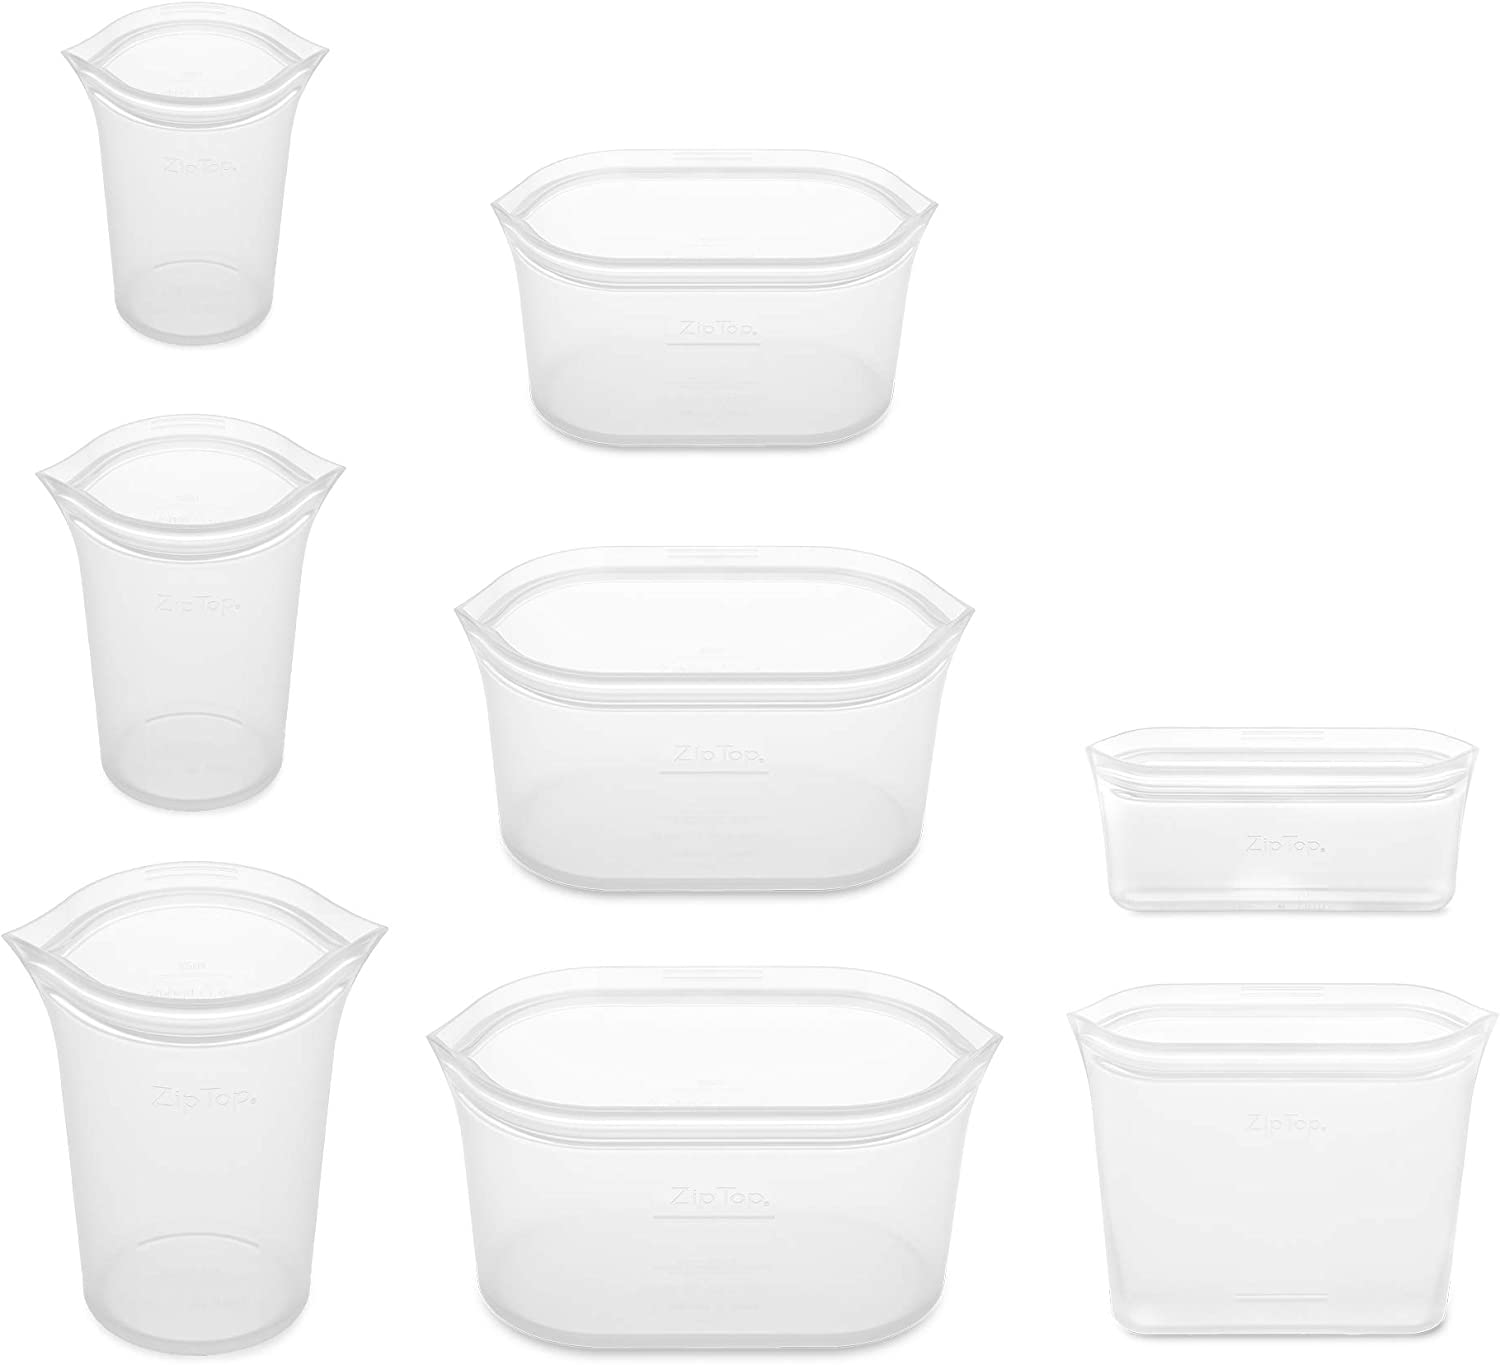 Zip Top Reusable 100% Silicone Food Storage Bags and Containers - Full Set- 3 Cups, 3 Dishes & 2 Bags - Frost